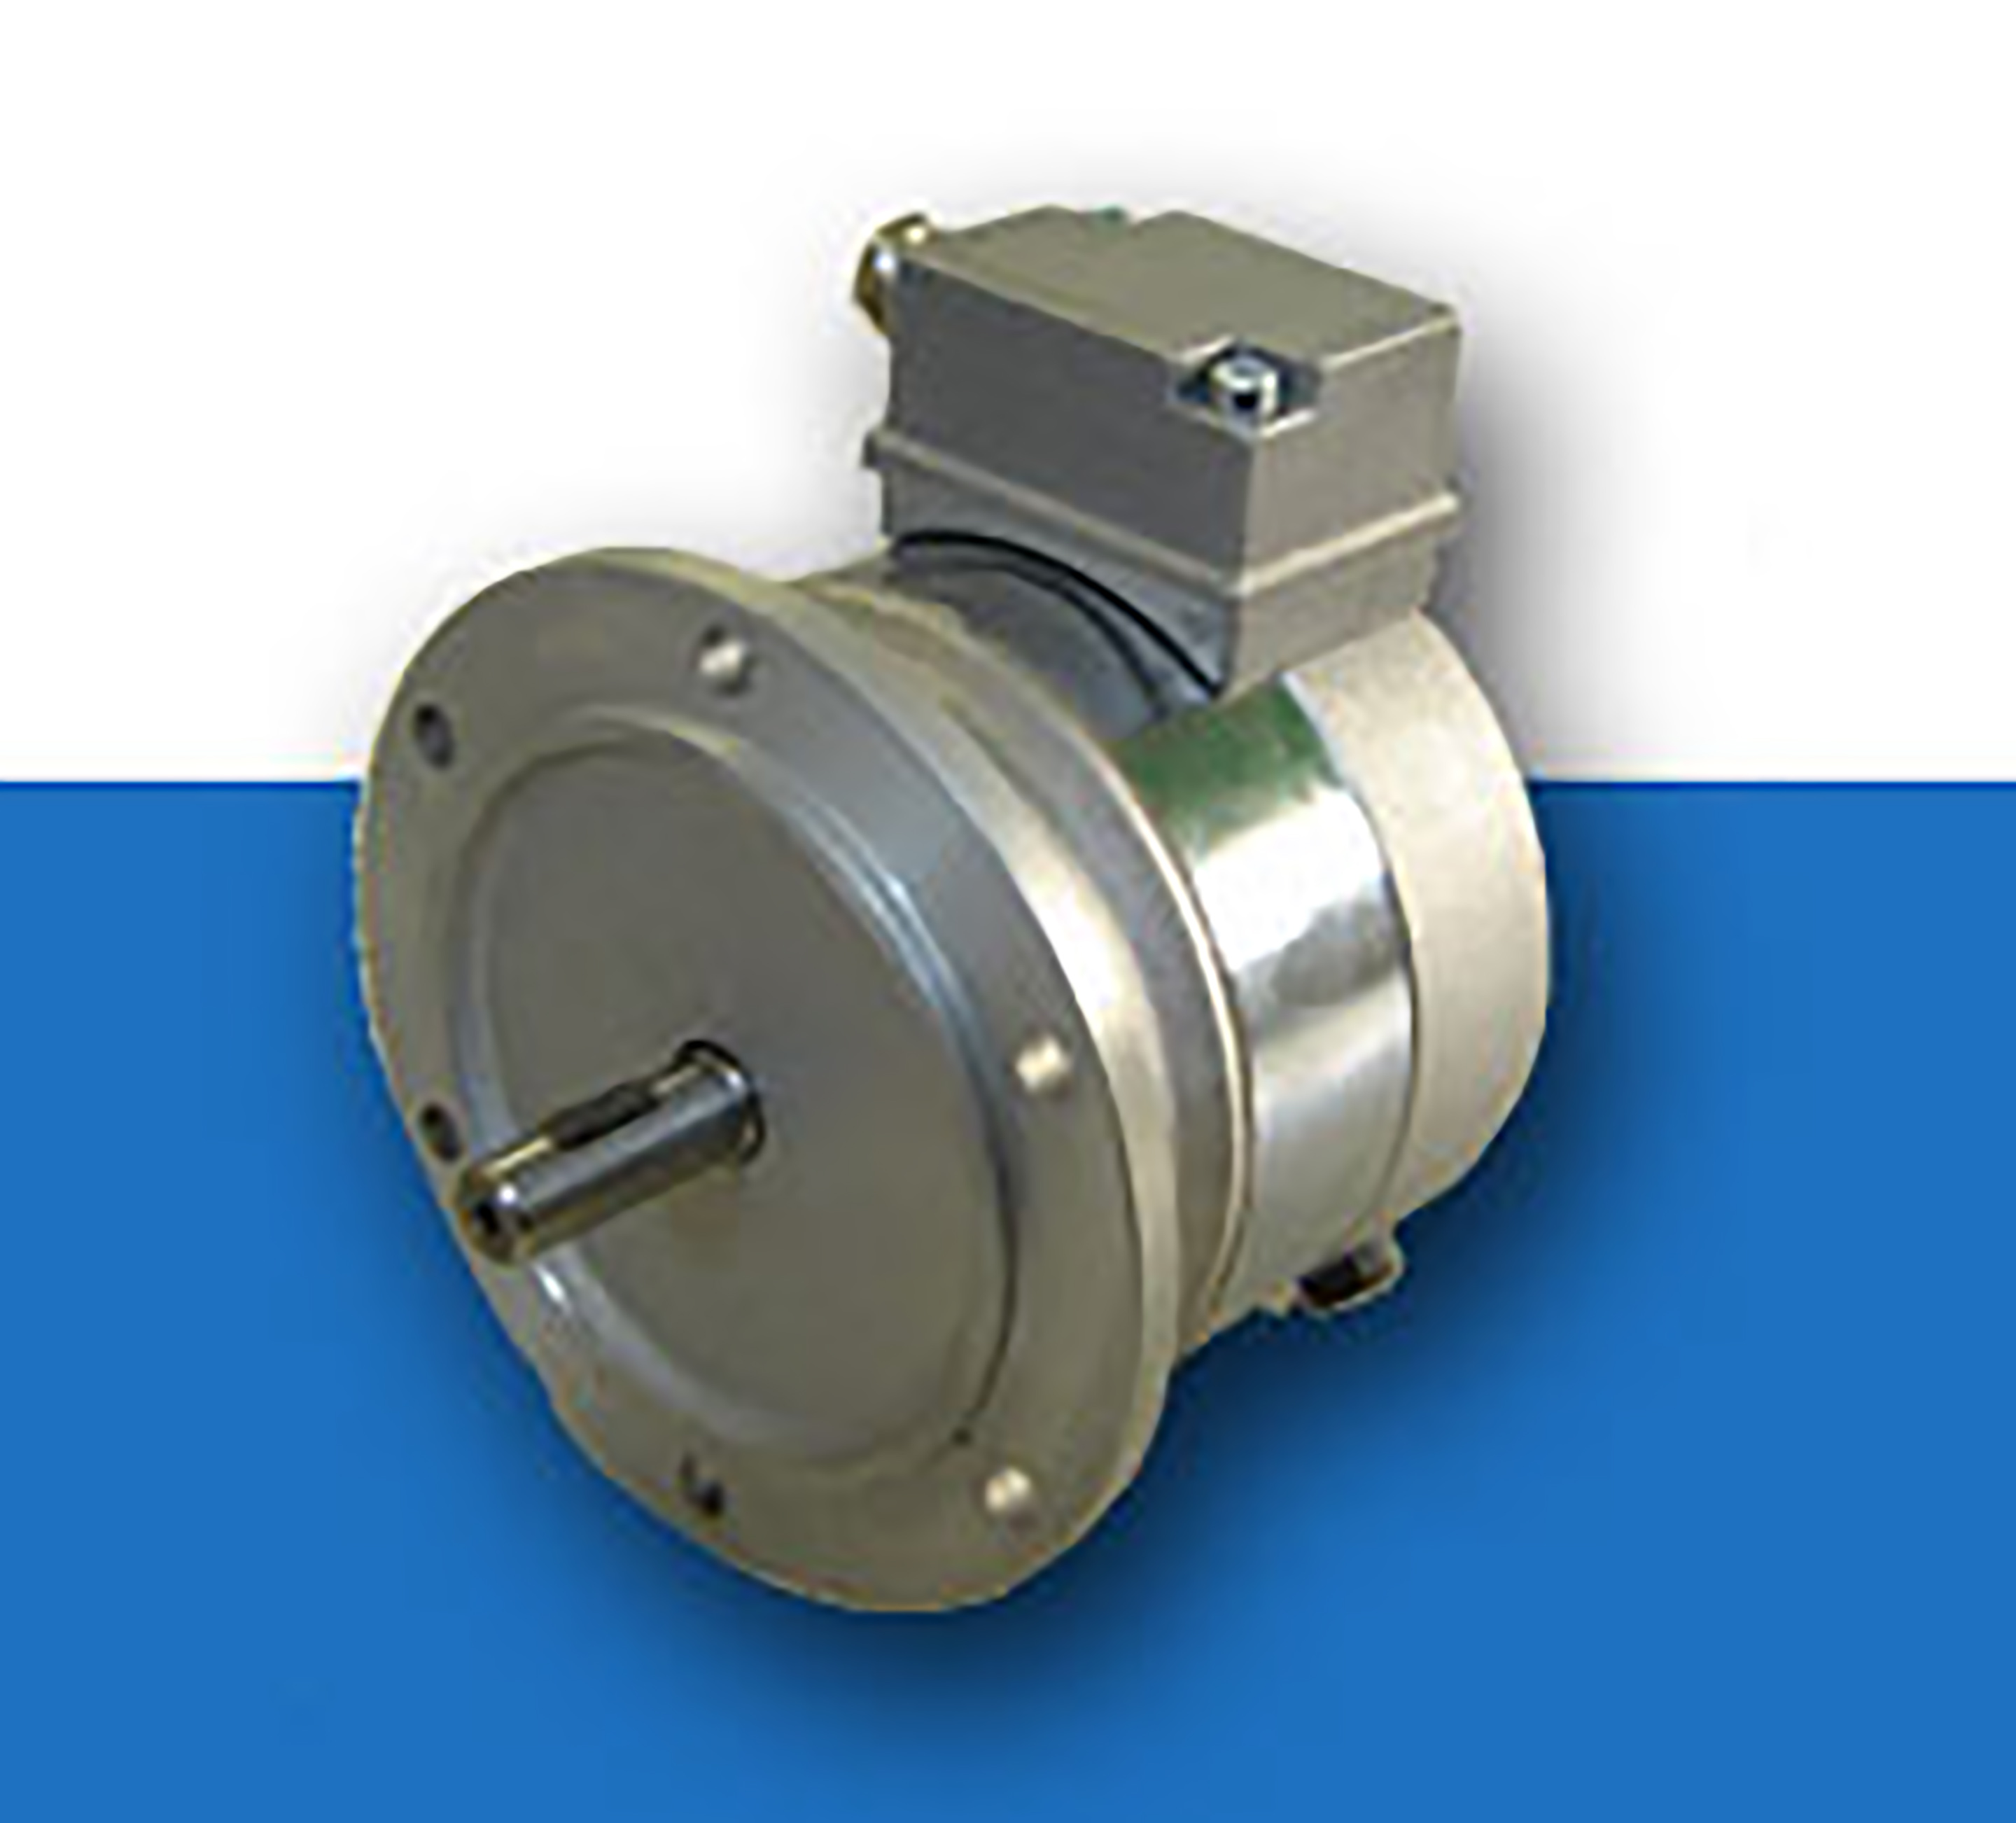 Dinamo alternatori ed encoders